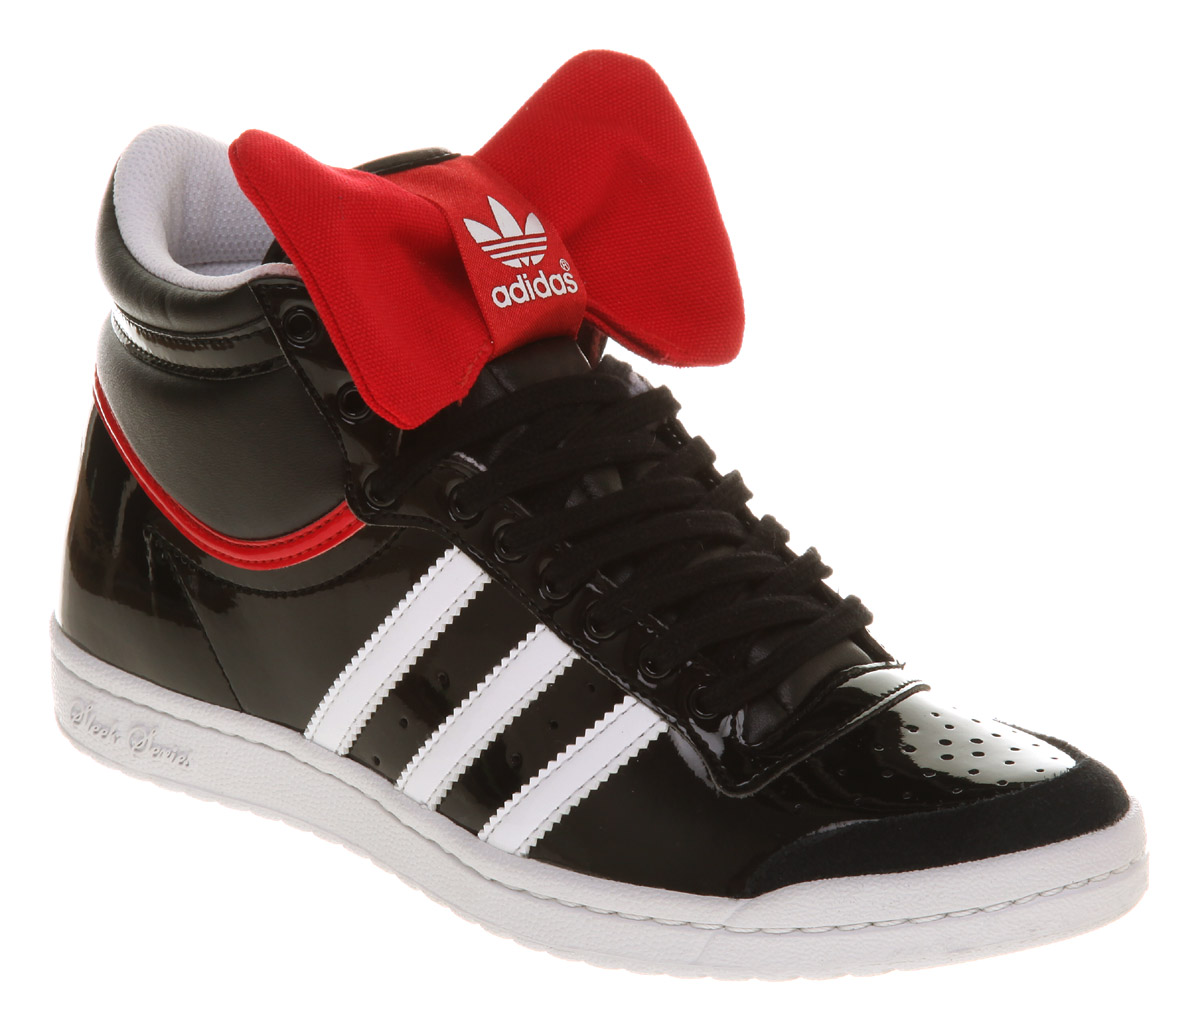 adidas trainers high tops